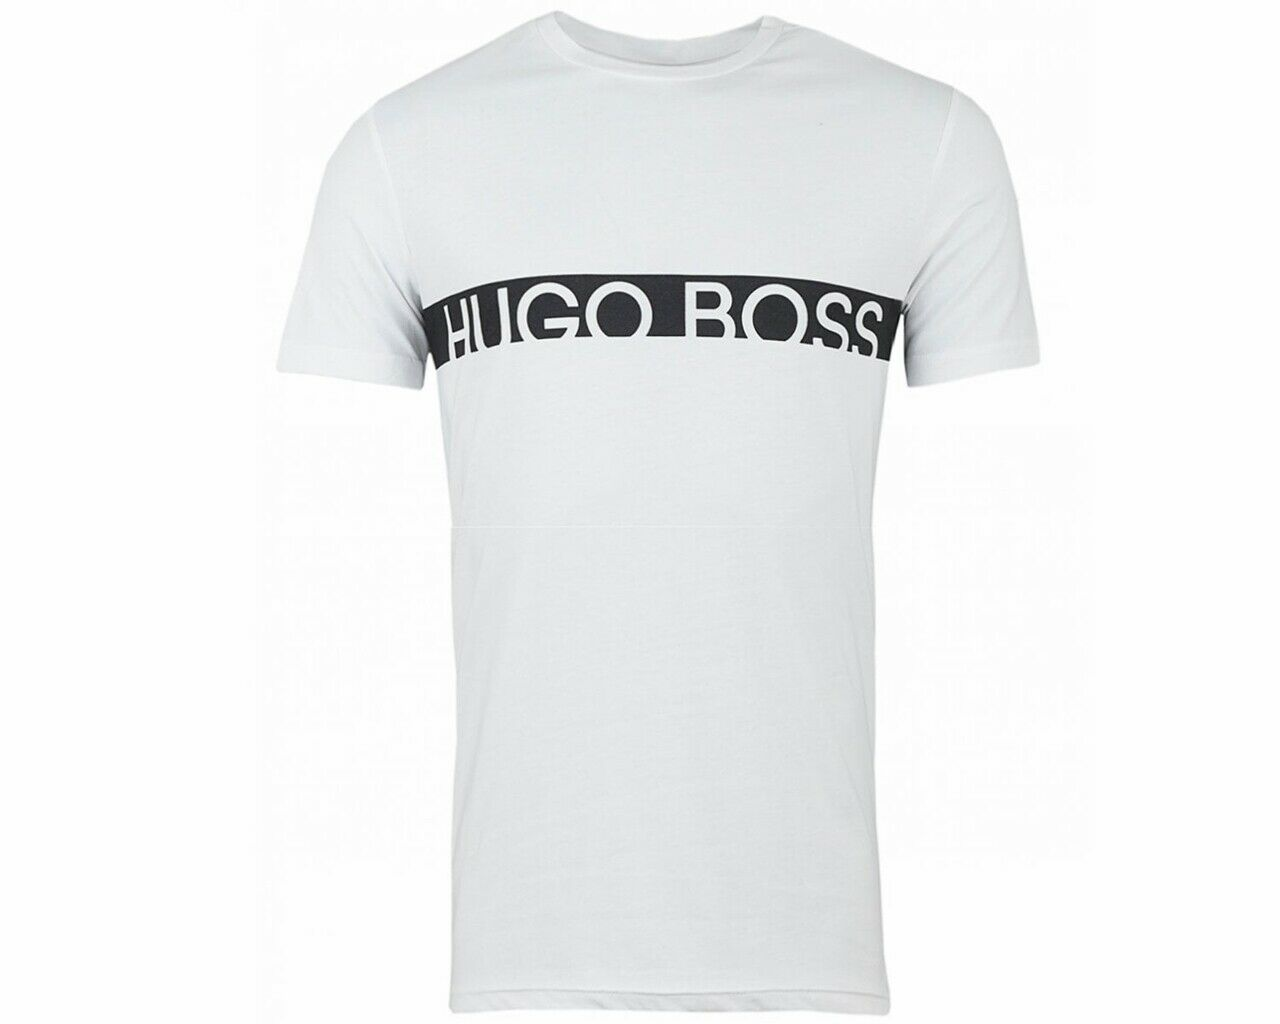 Hugo Boss 50407600 101 Crew Neck Mens T-Shirt RN Weiß Top